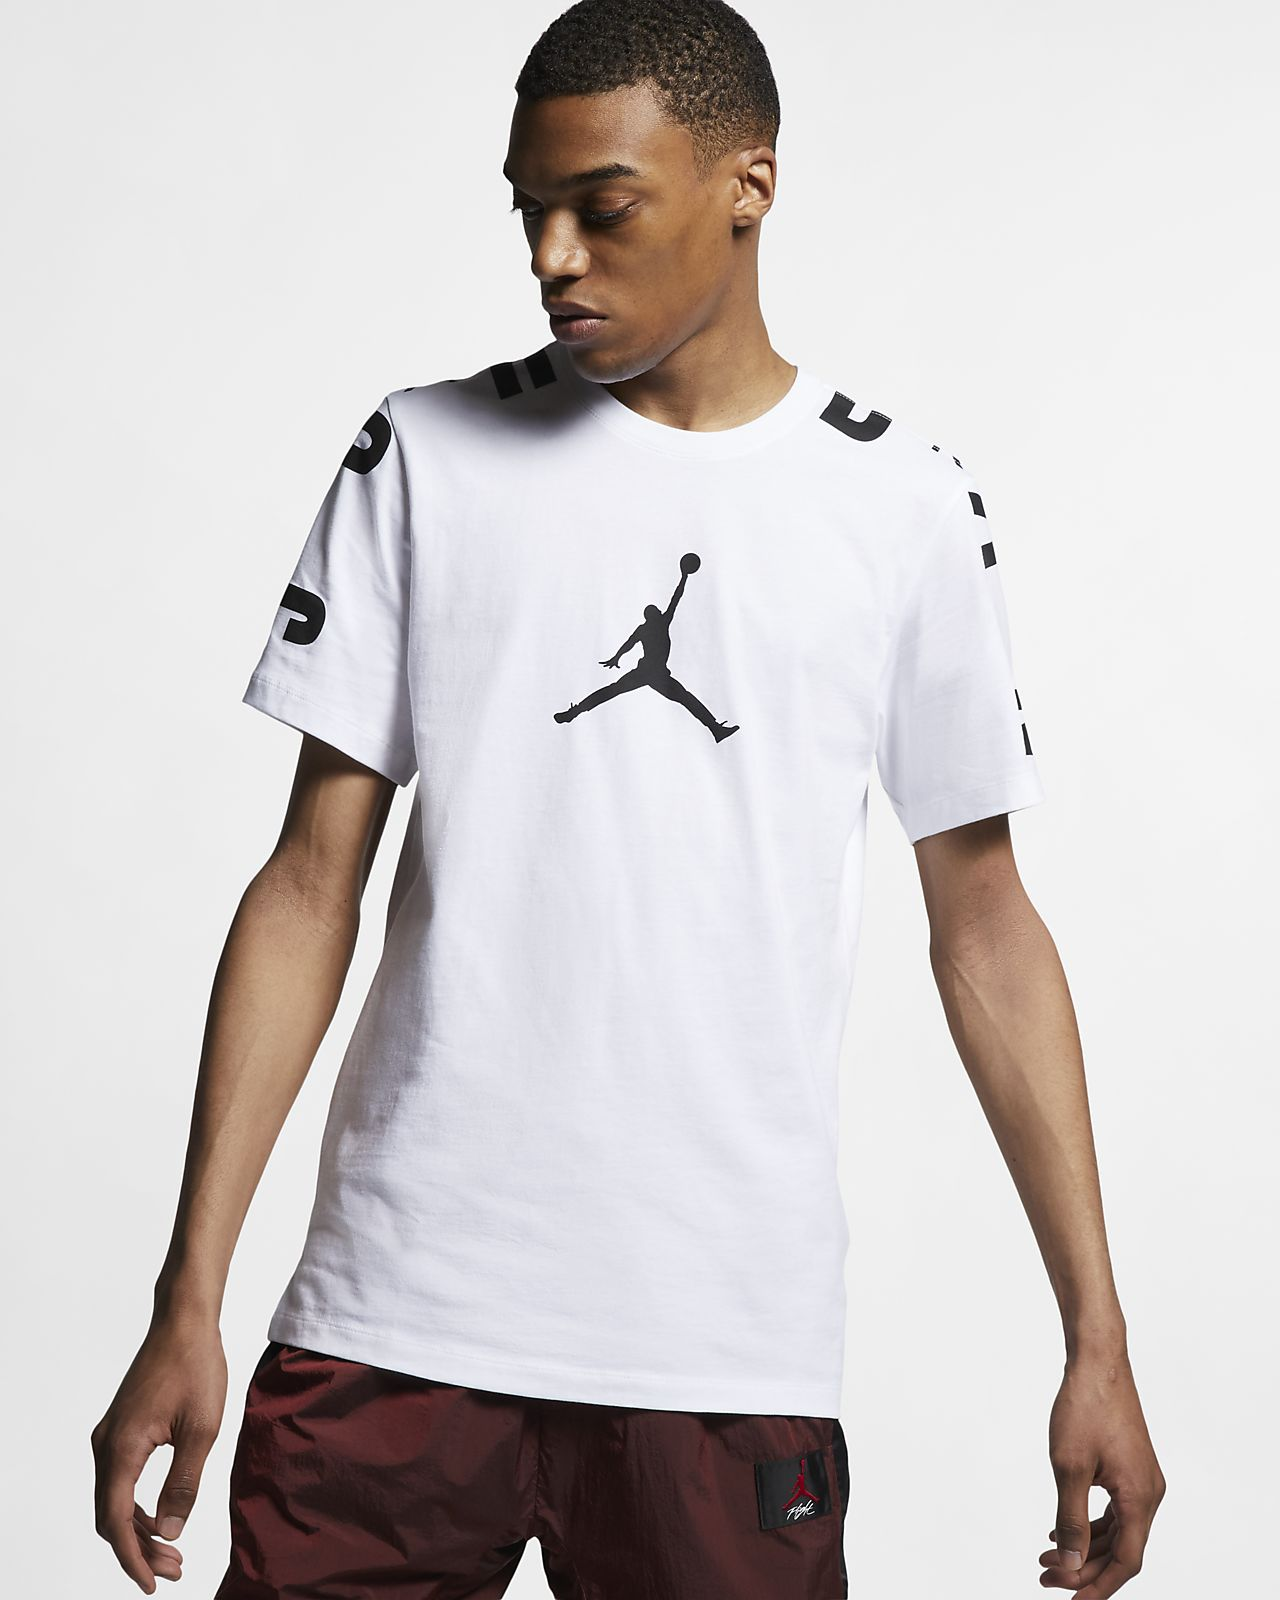 Jordan Stretch 23 Samarreta - Home